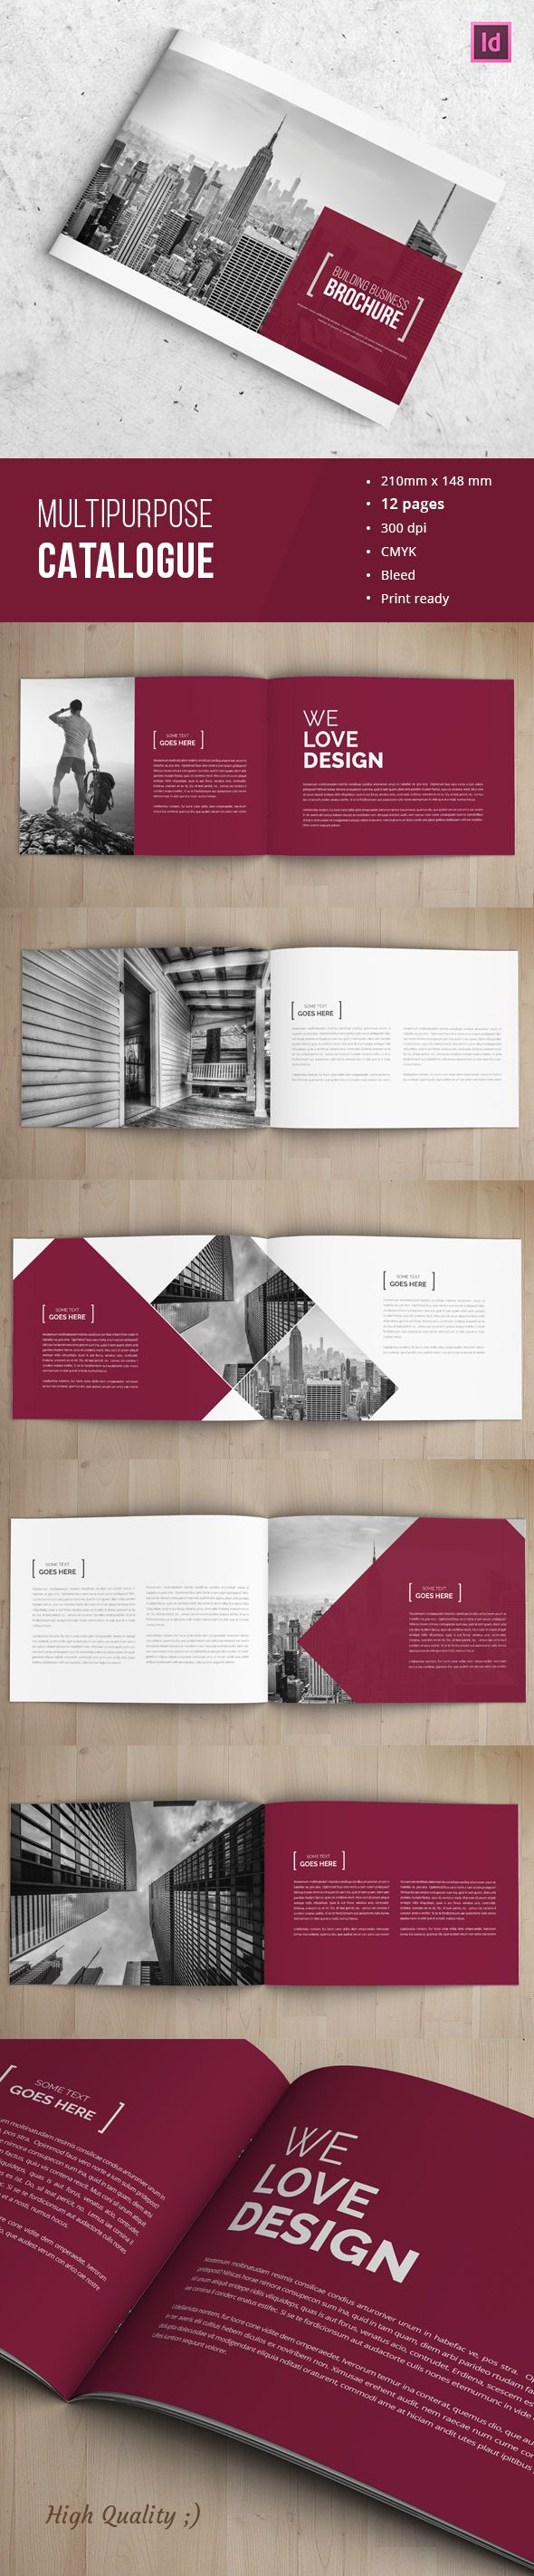 Corporate Indesign Brochure on Behance